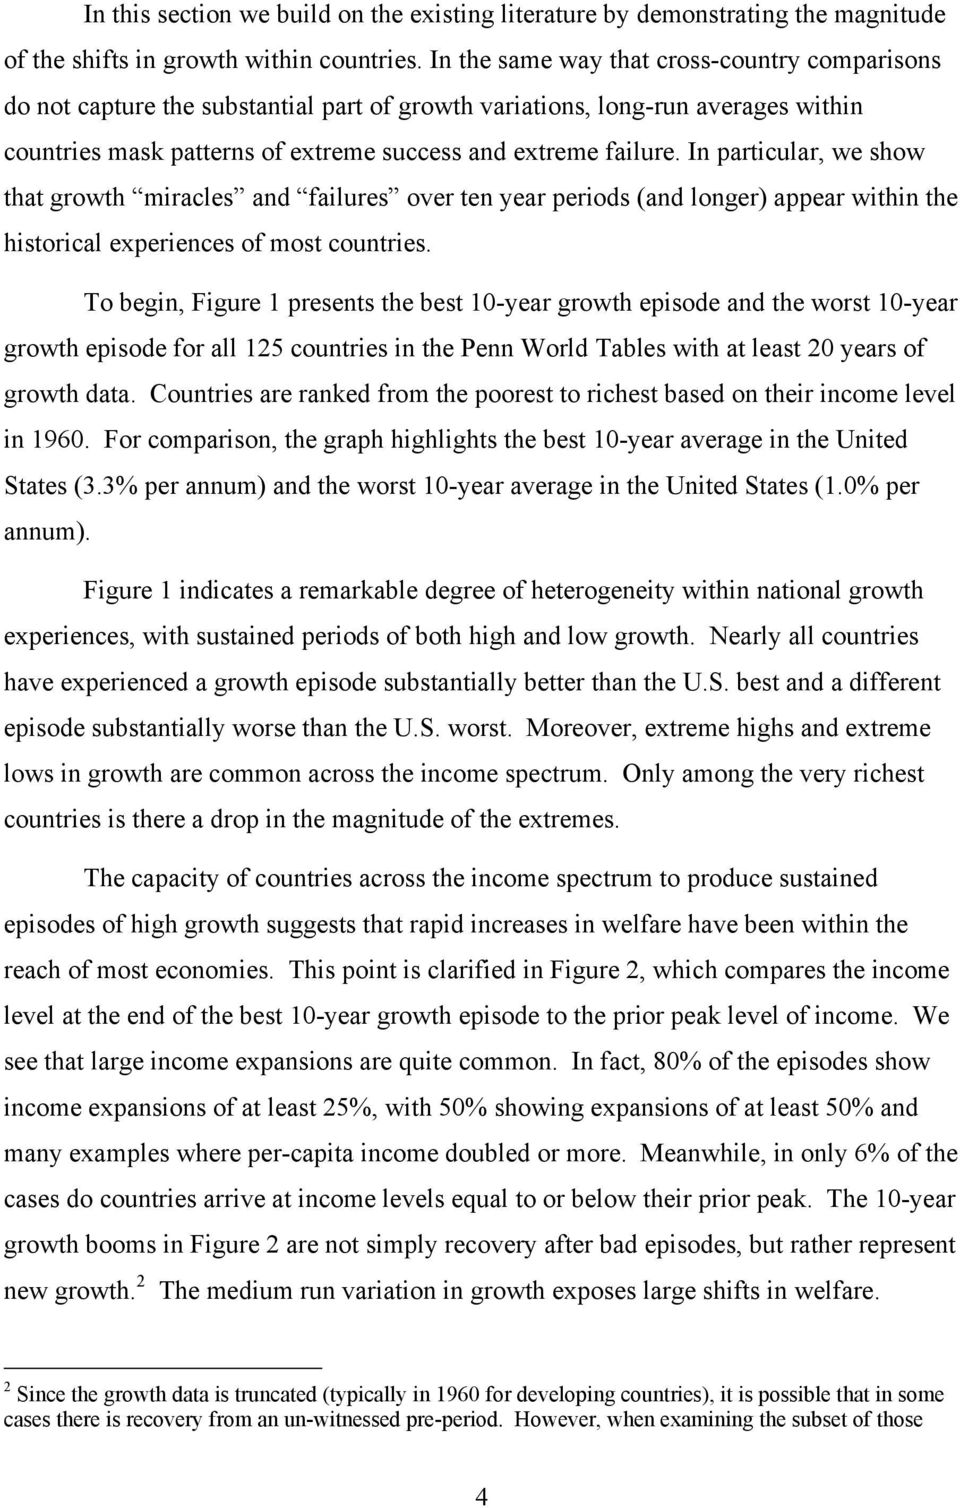 In particular, we show that growth miracles and failures over ten year periods (and longer) appear within the historical experiences of most countries.